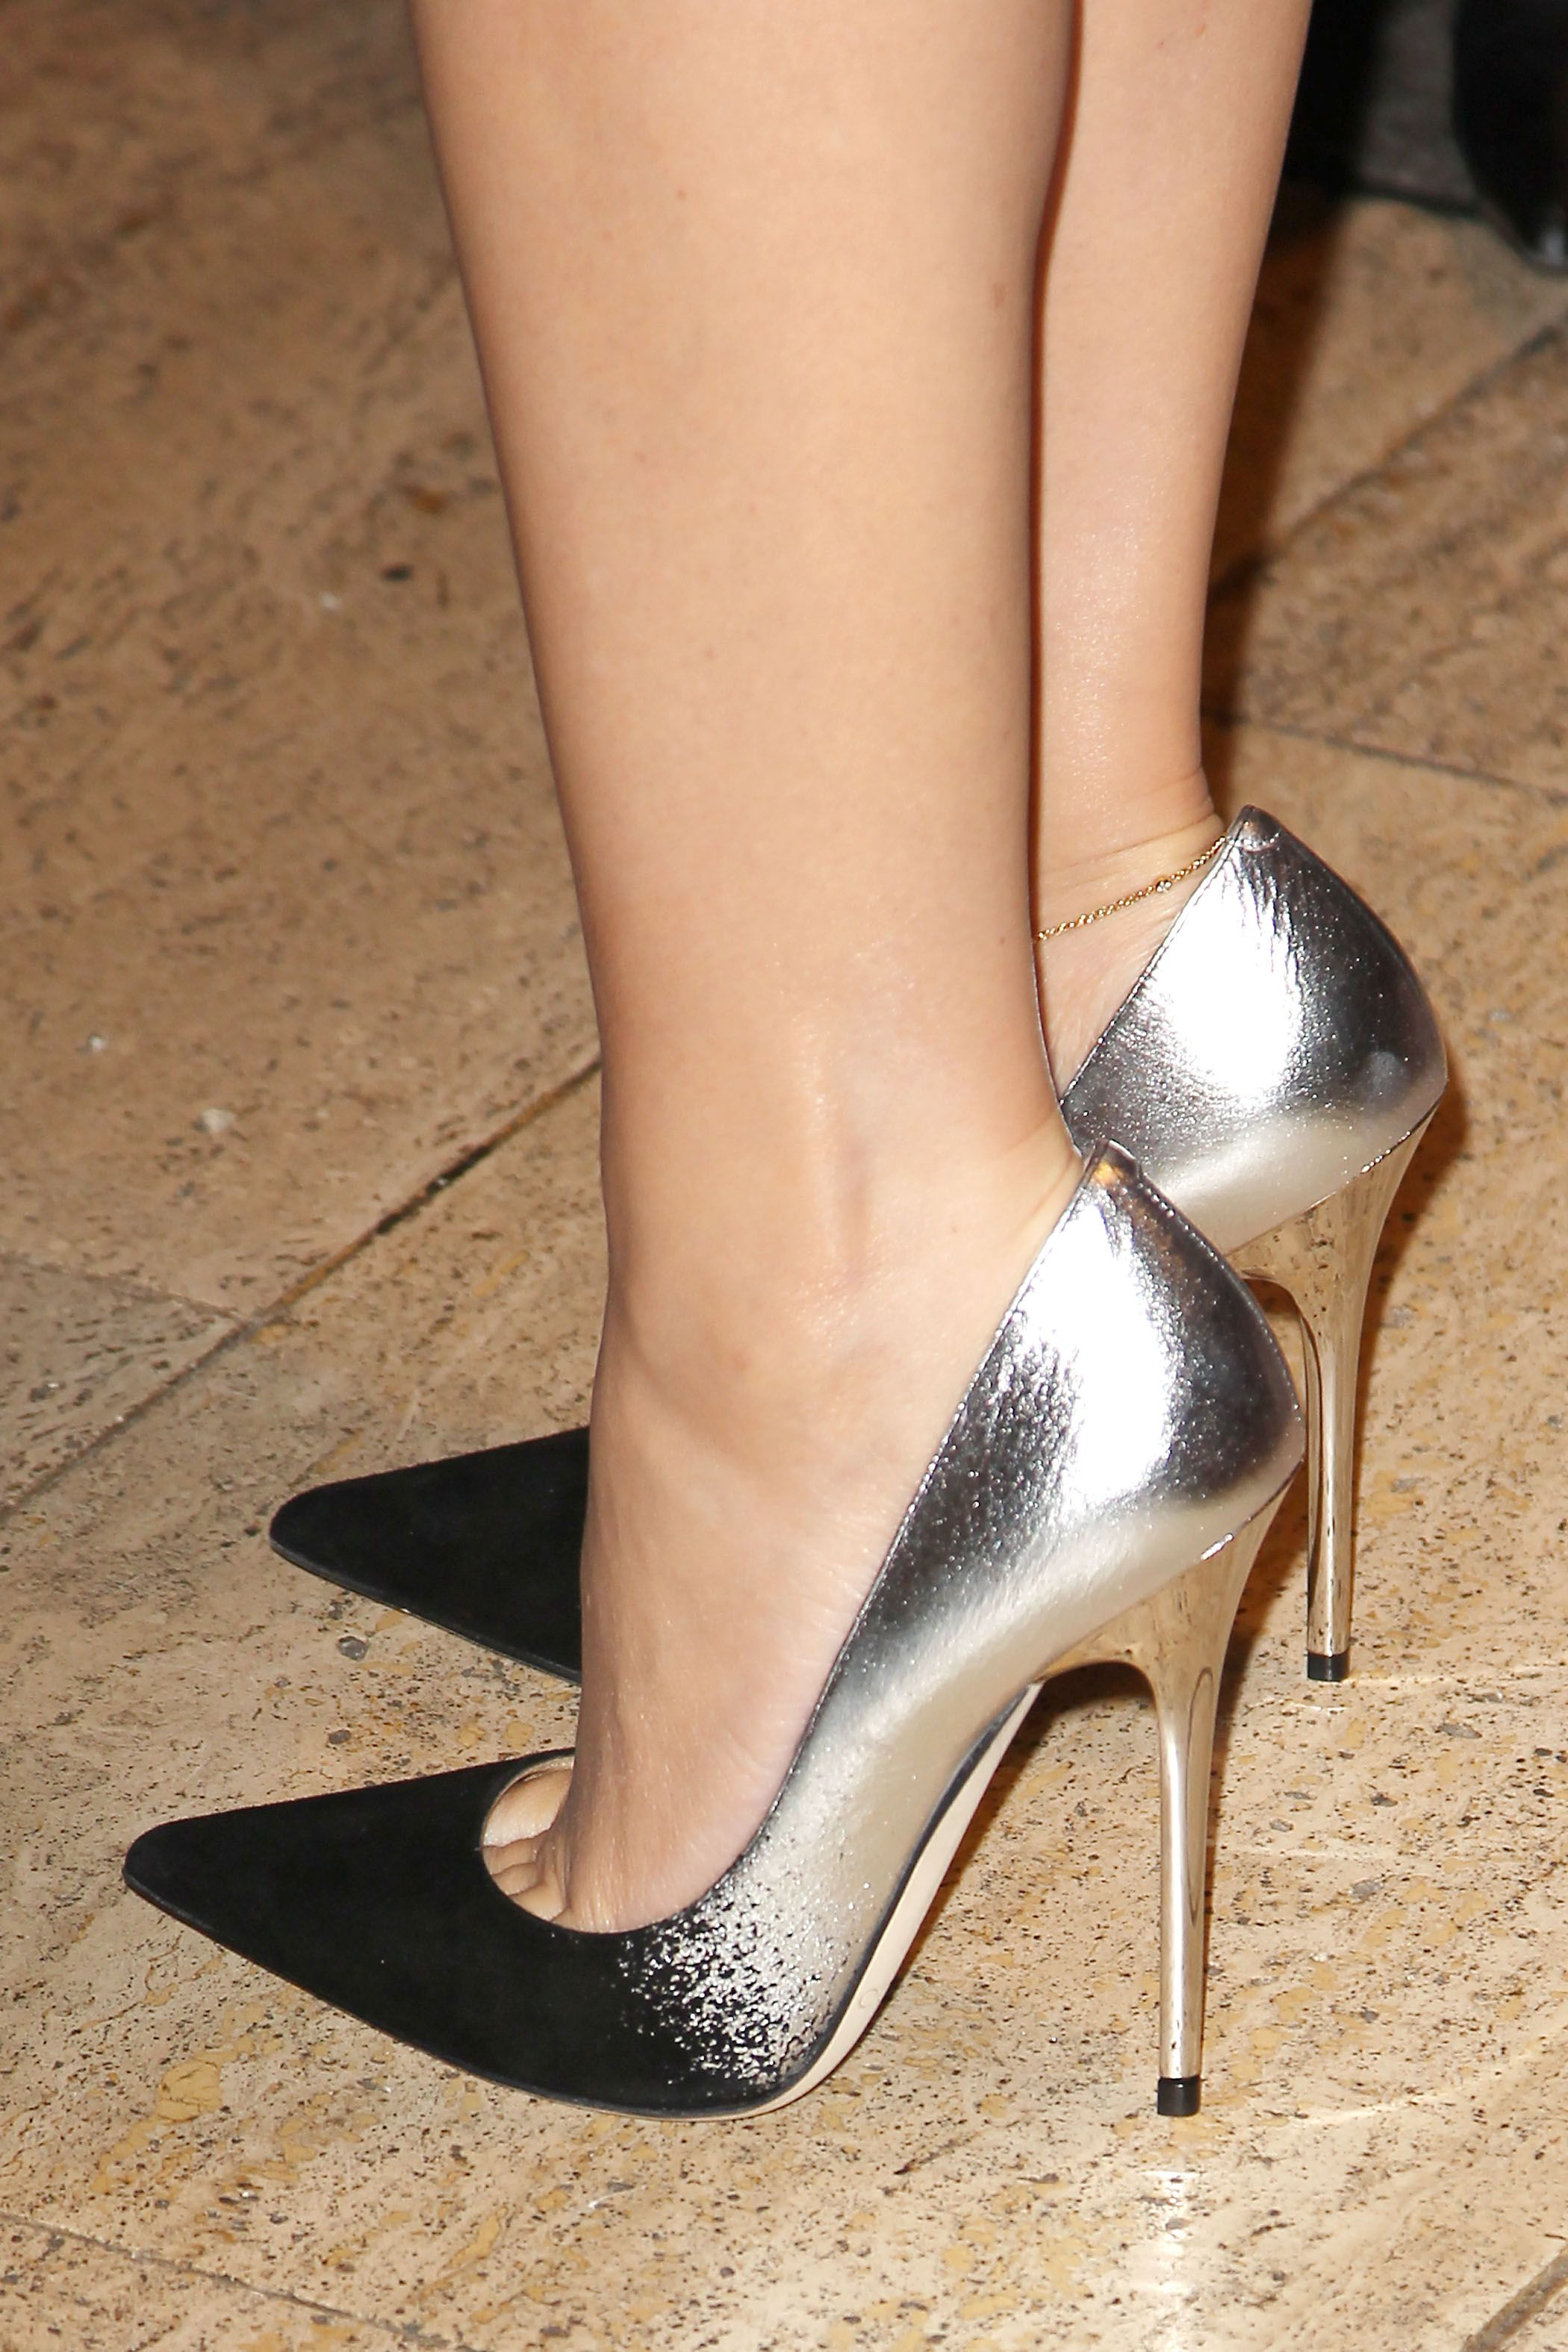 a2d4e216a4d jimmy choo anouk pumps in black silver on the feet of kylie minogue.   shoeporn